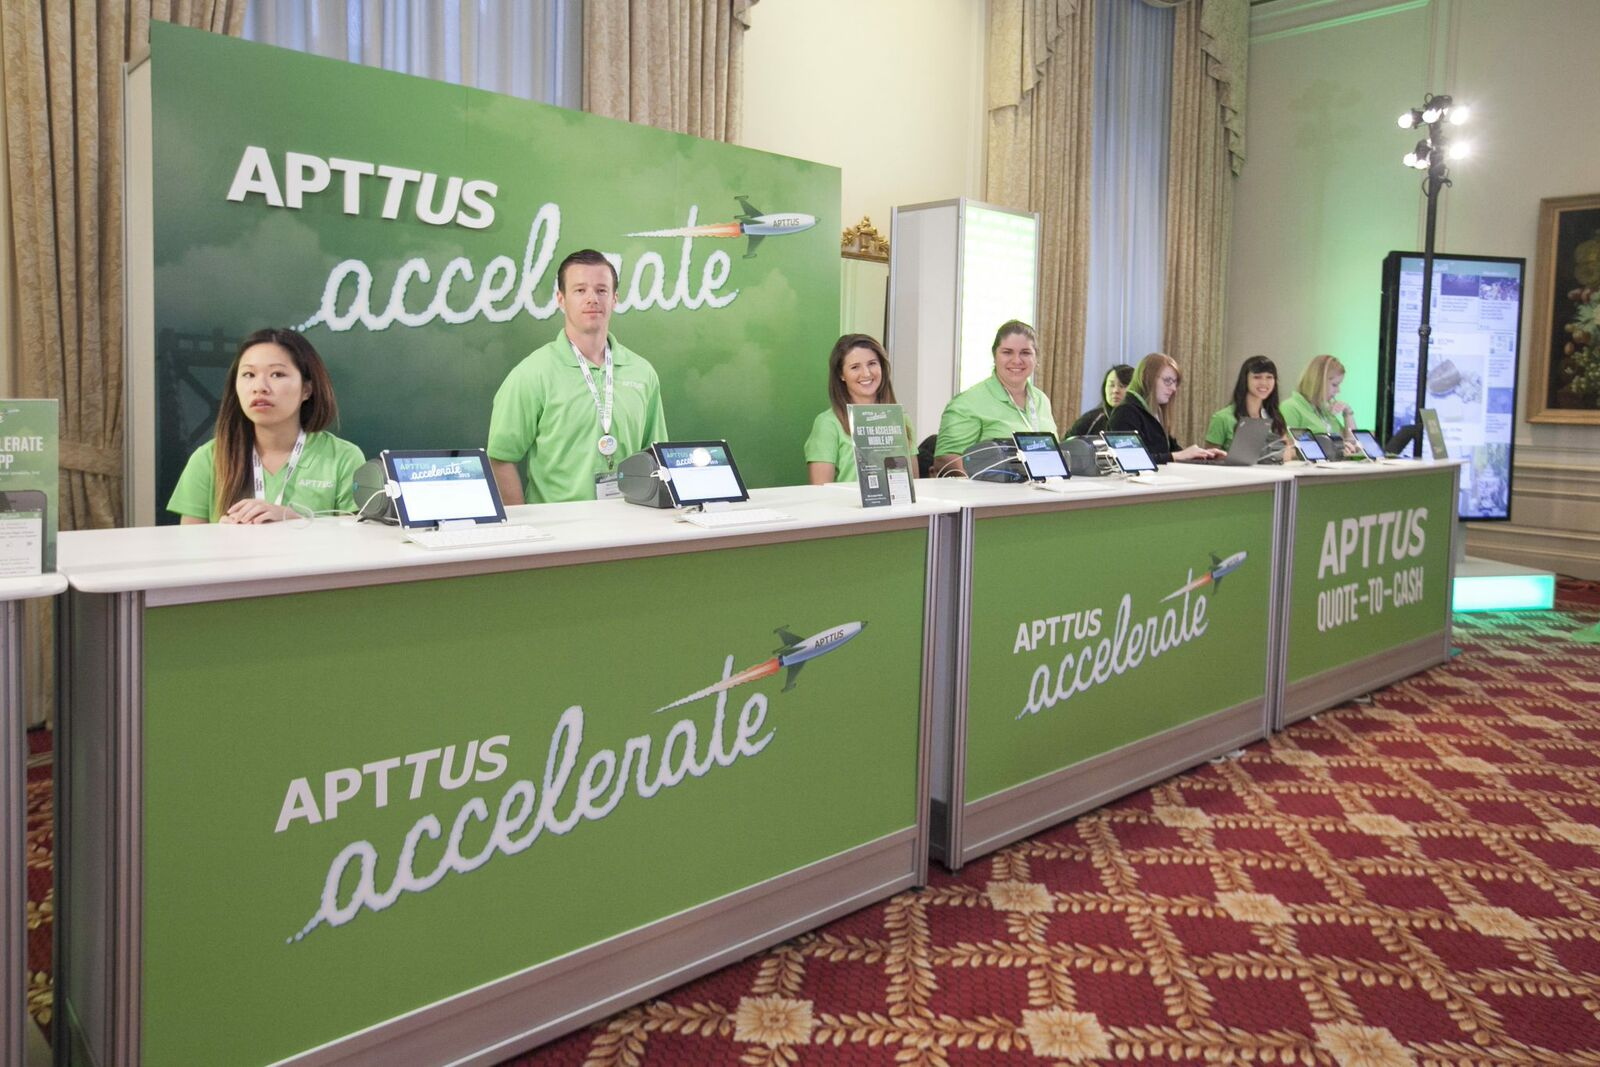 Apttus Acelerate 2015 - Drive Production Event